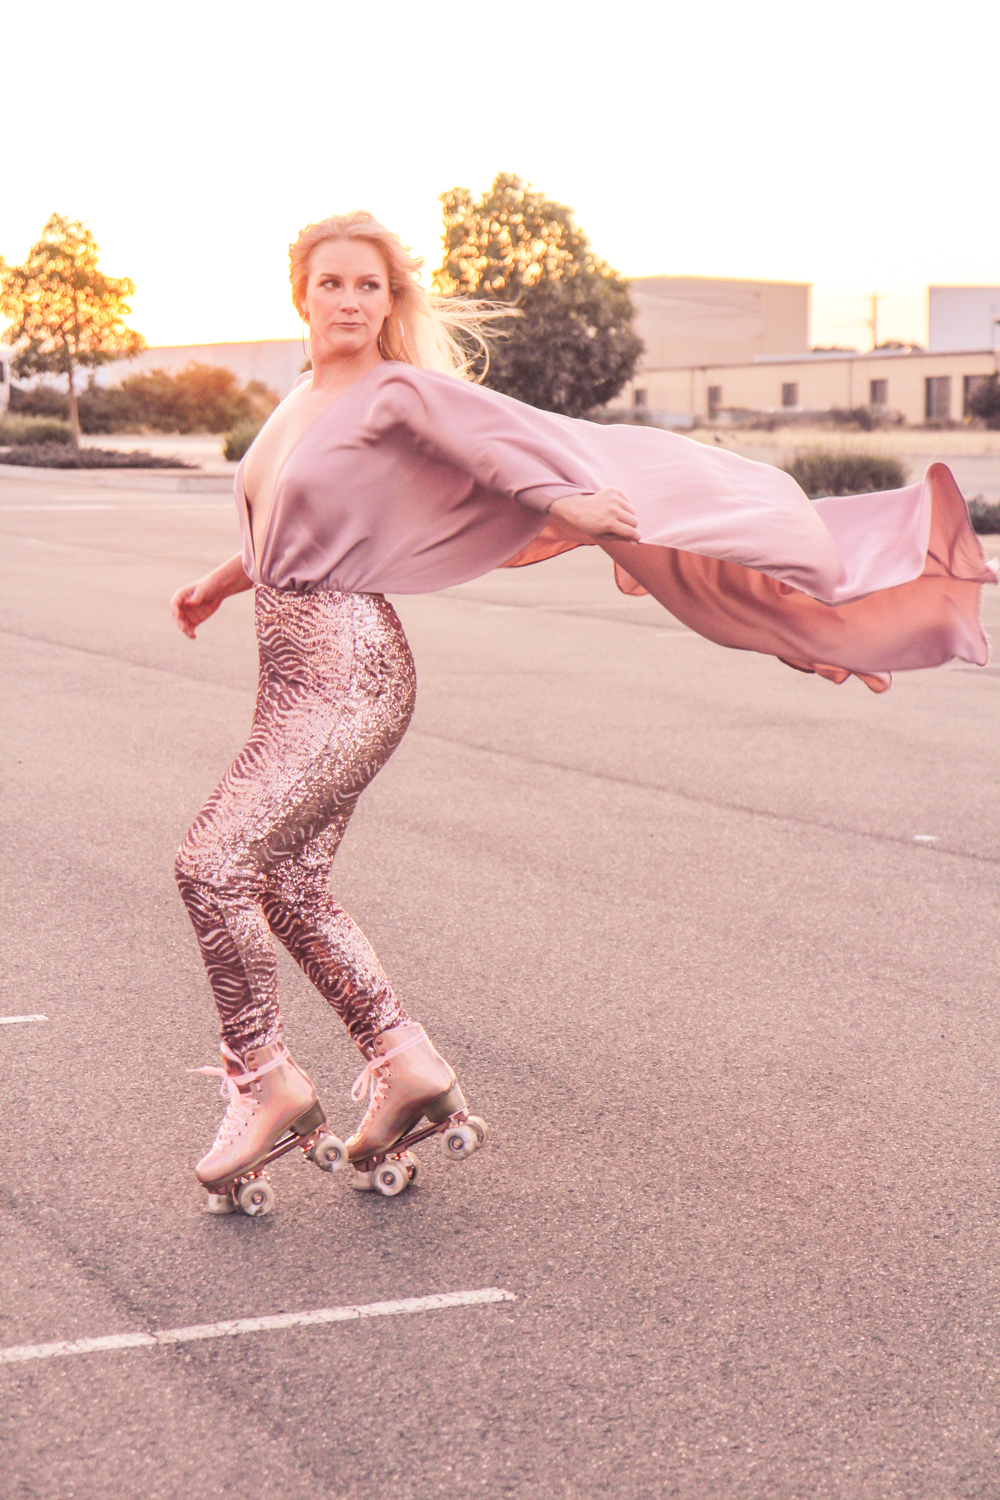 Liana of @findingfemme in Impala Marawa rose gold rollerskates